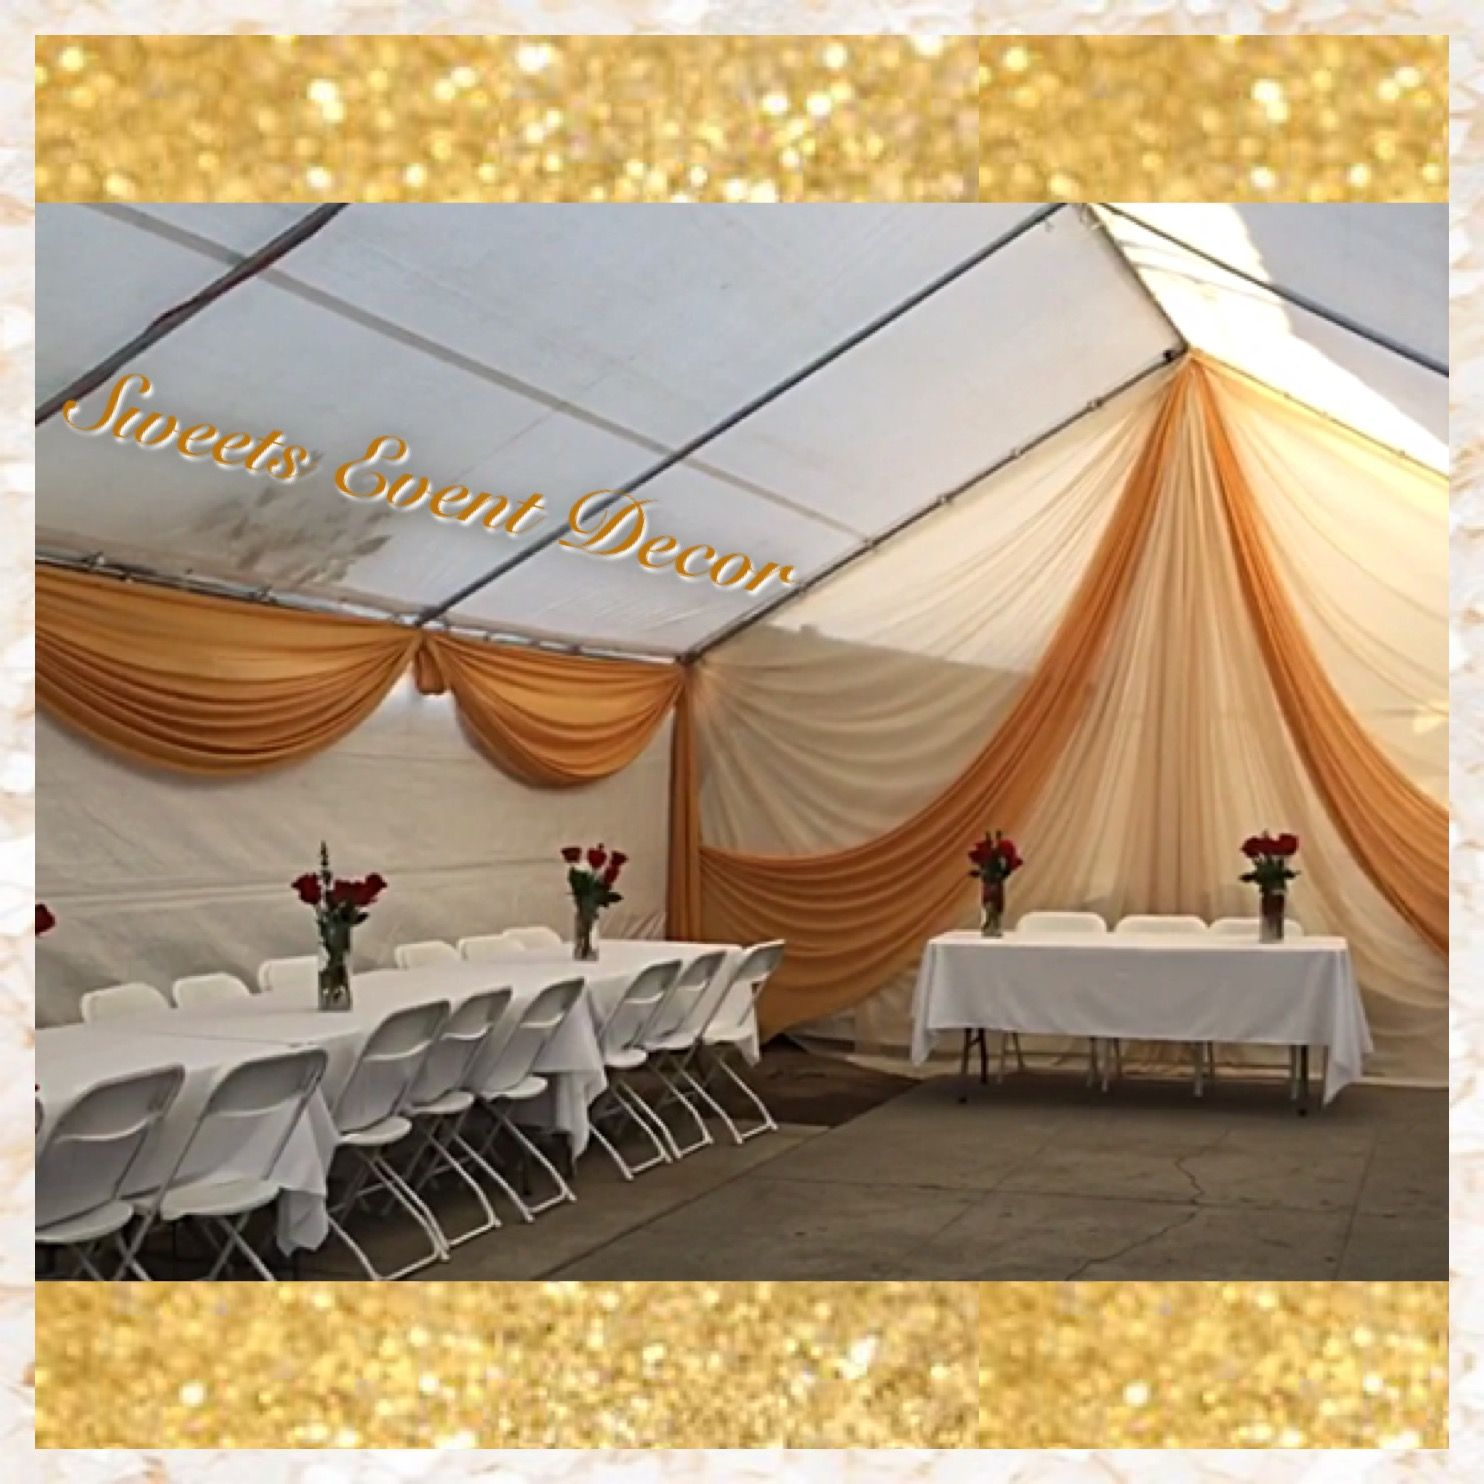 Gold Valance Tent Draping Decor by Sweets Event Decor & Gold Valance Tent Draping Decor by: Sweets Event Decor   Tent ...